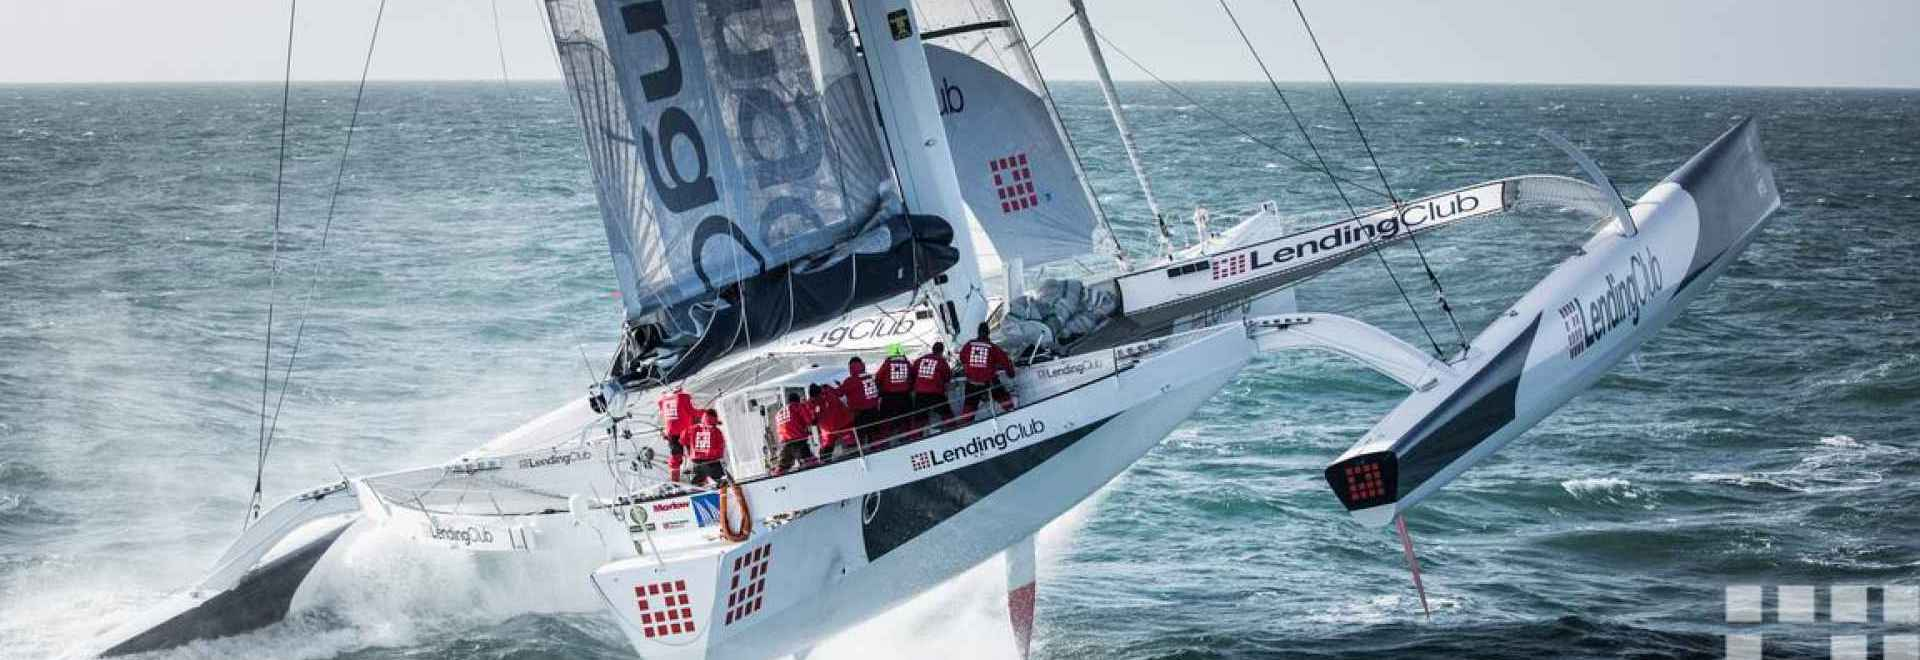 Lending Club 2 prepares for the Newport to Bermuda record attempt.